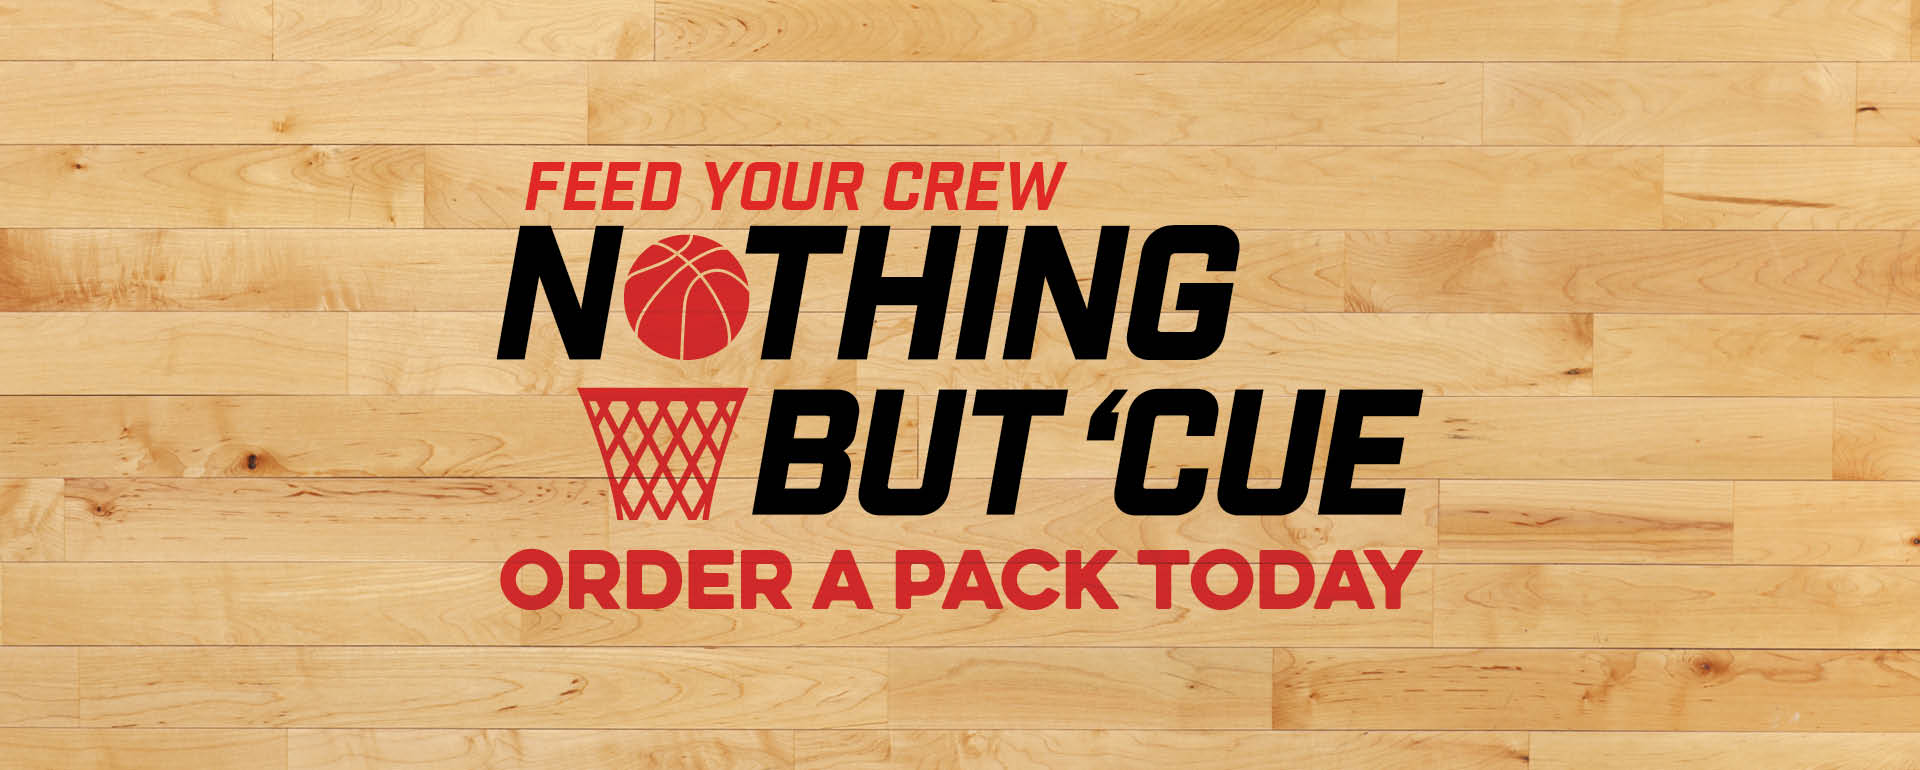 Feed Your Crew Nothing But 'Cue